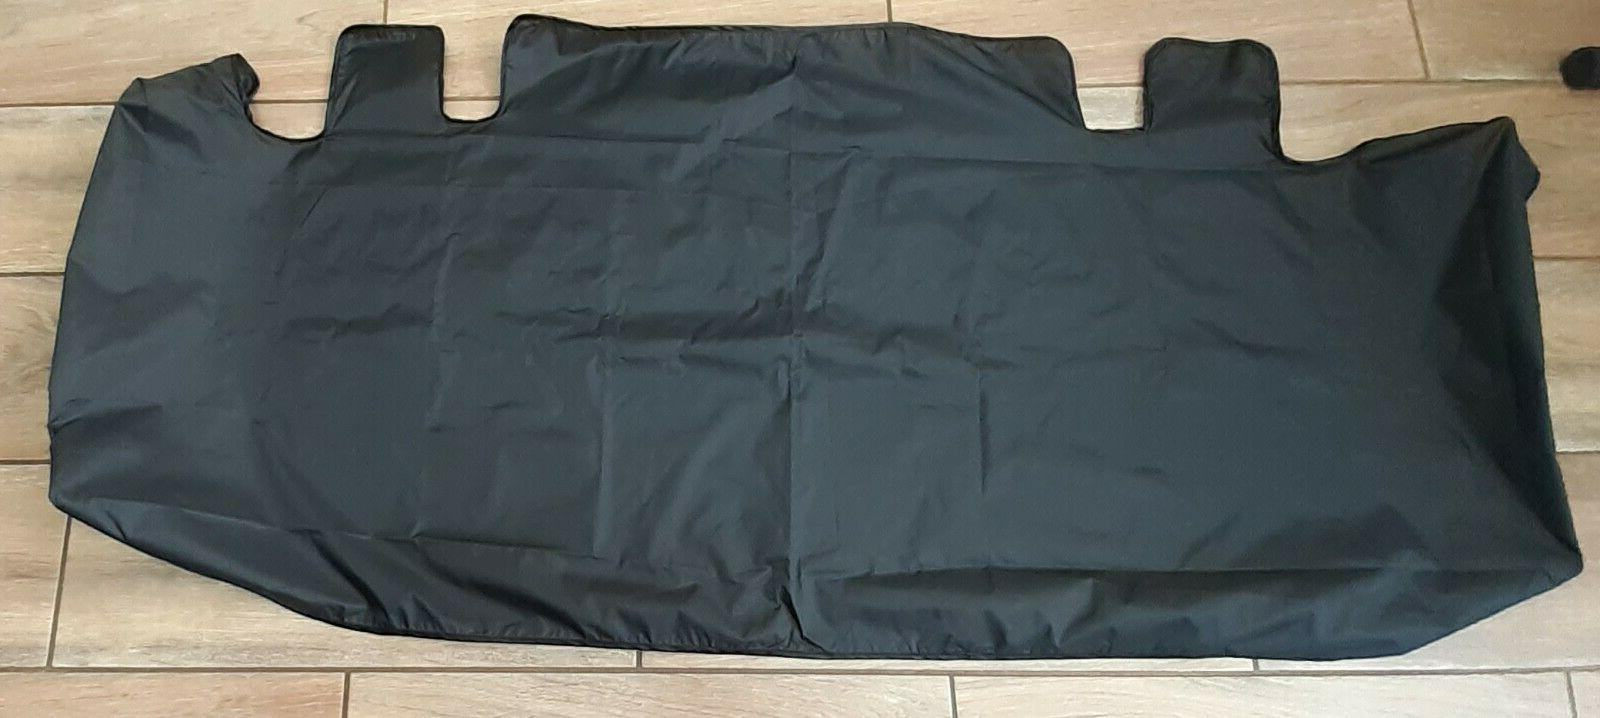 Yamaha Genos Dust Cover - Keyboard, and